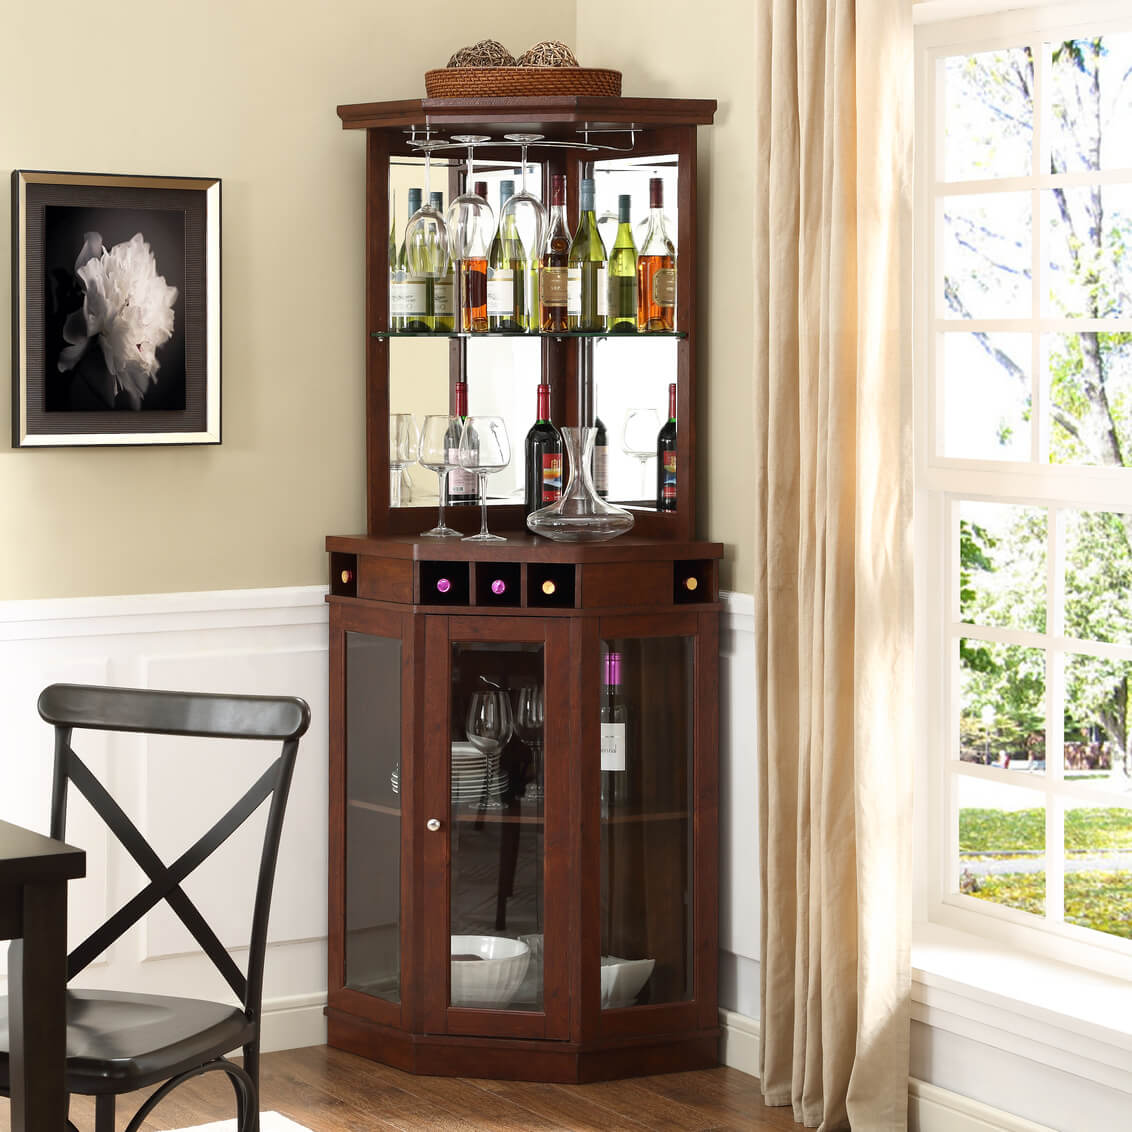 gh corner furniture small table wall rackstarget together with rack sophisticated lock wine then bar style rummy ikea decoras buffet cabinet mountedter liquor